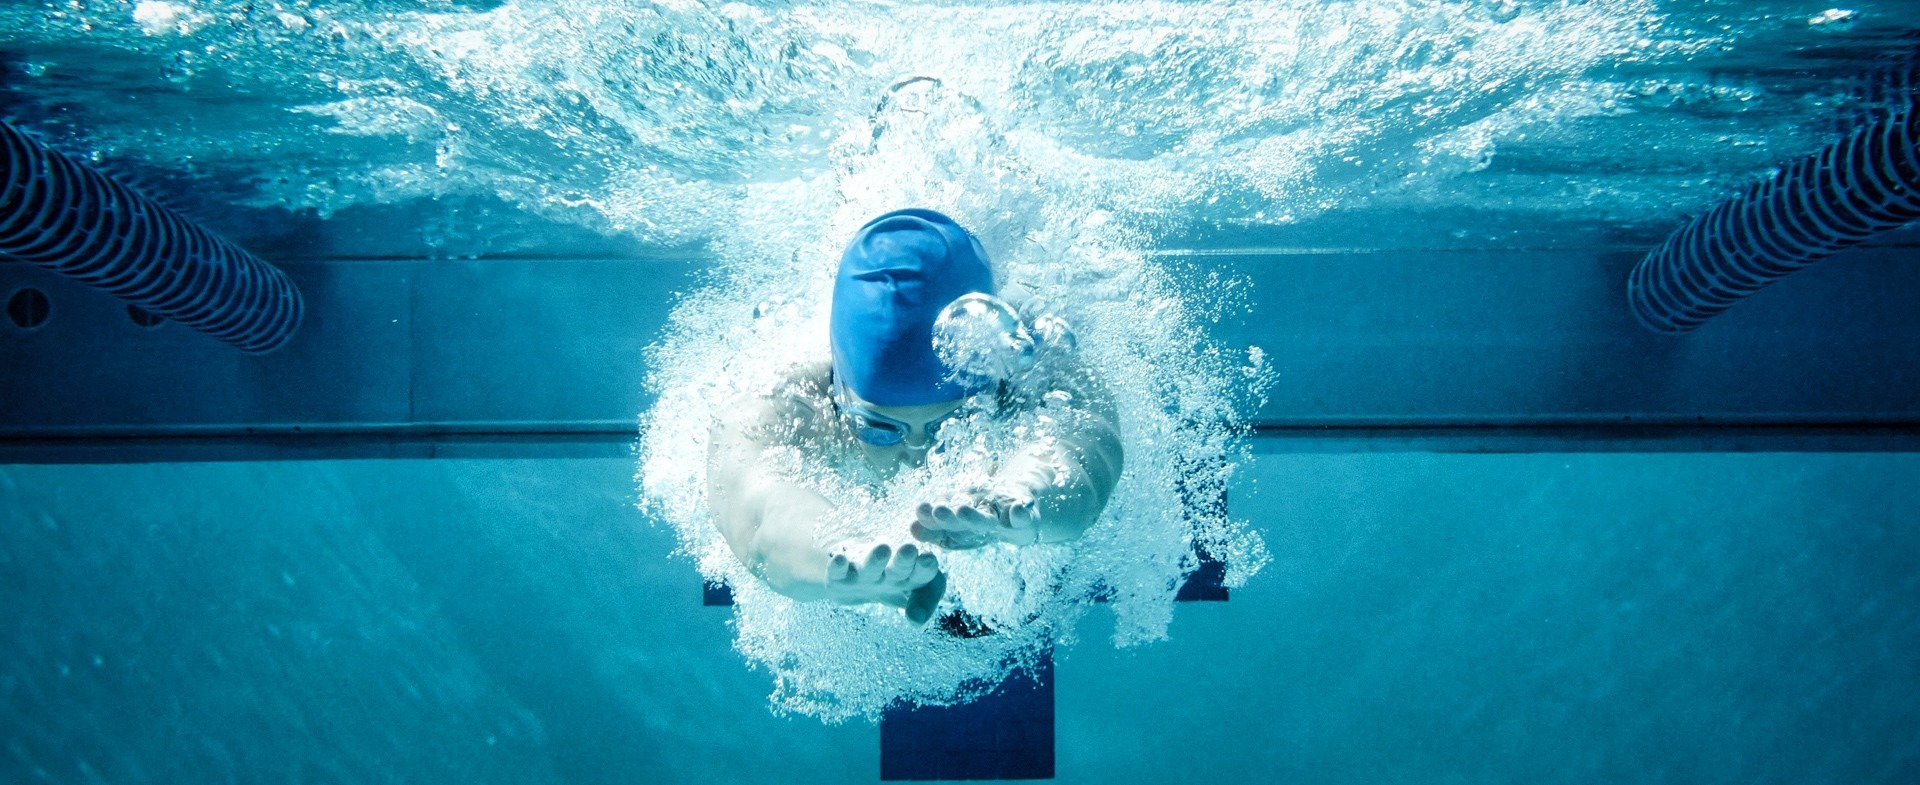 Person swimming in a lap pool